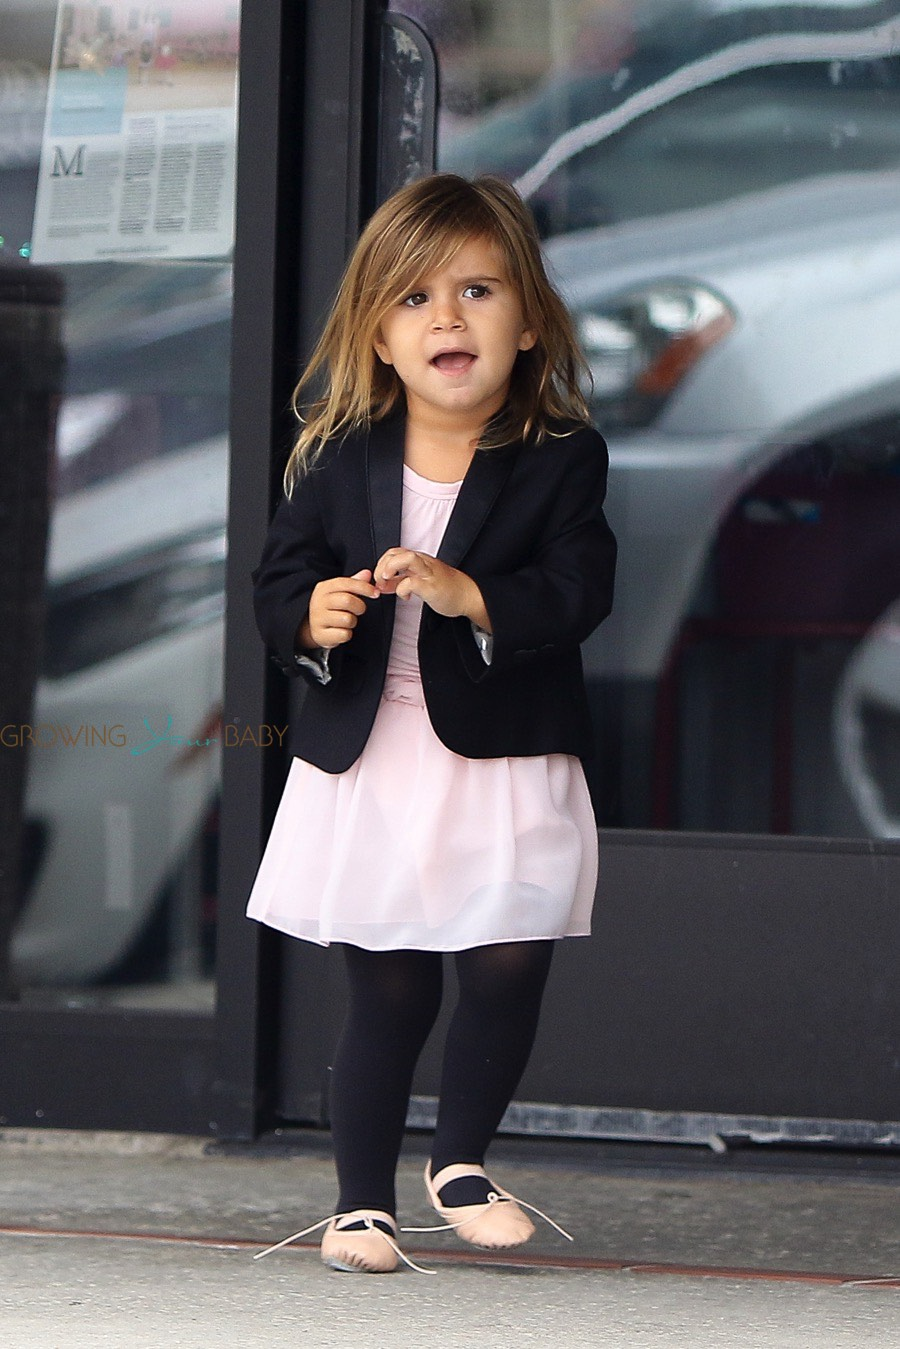 Penelope Disick At Dance Class With Cousin North Growing